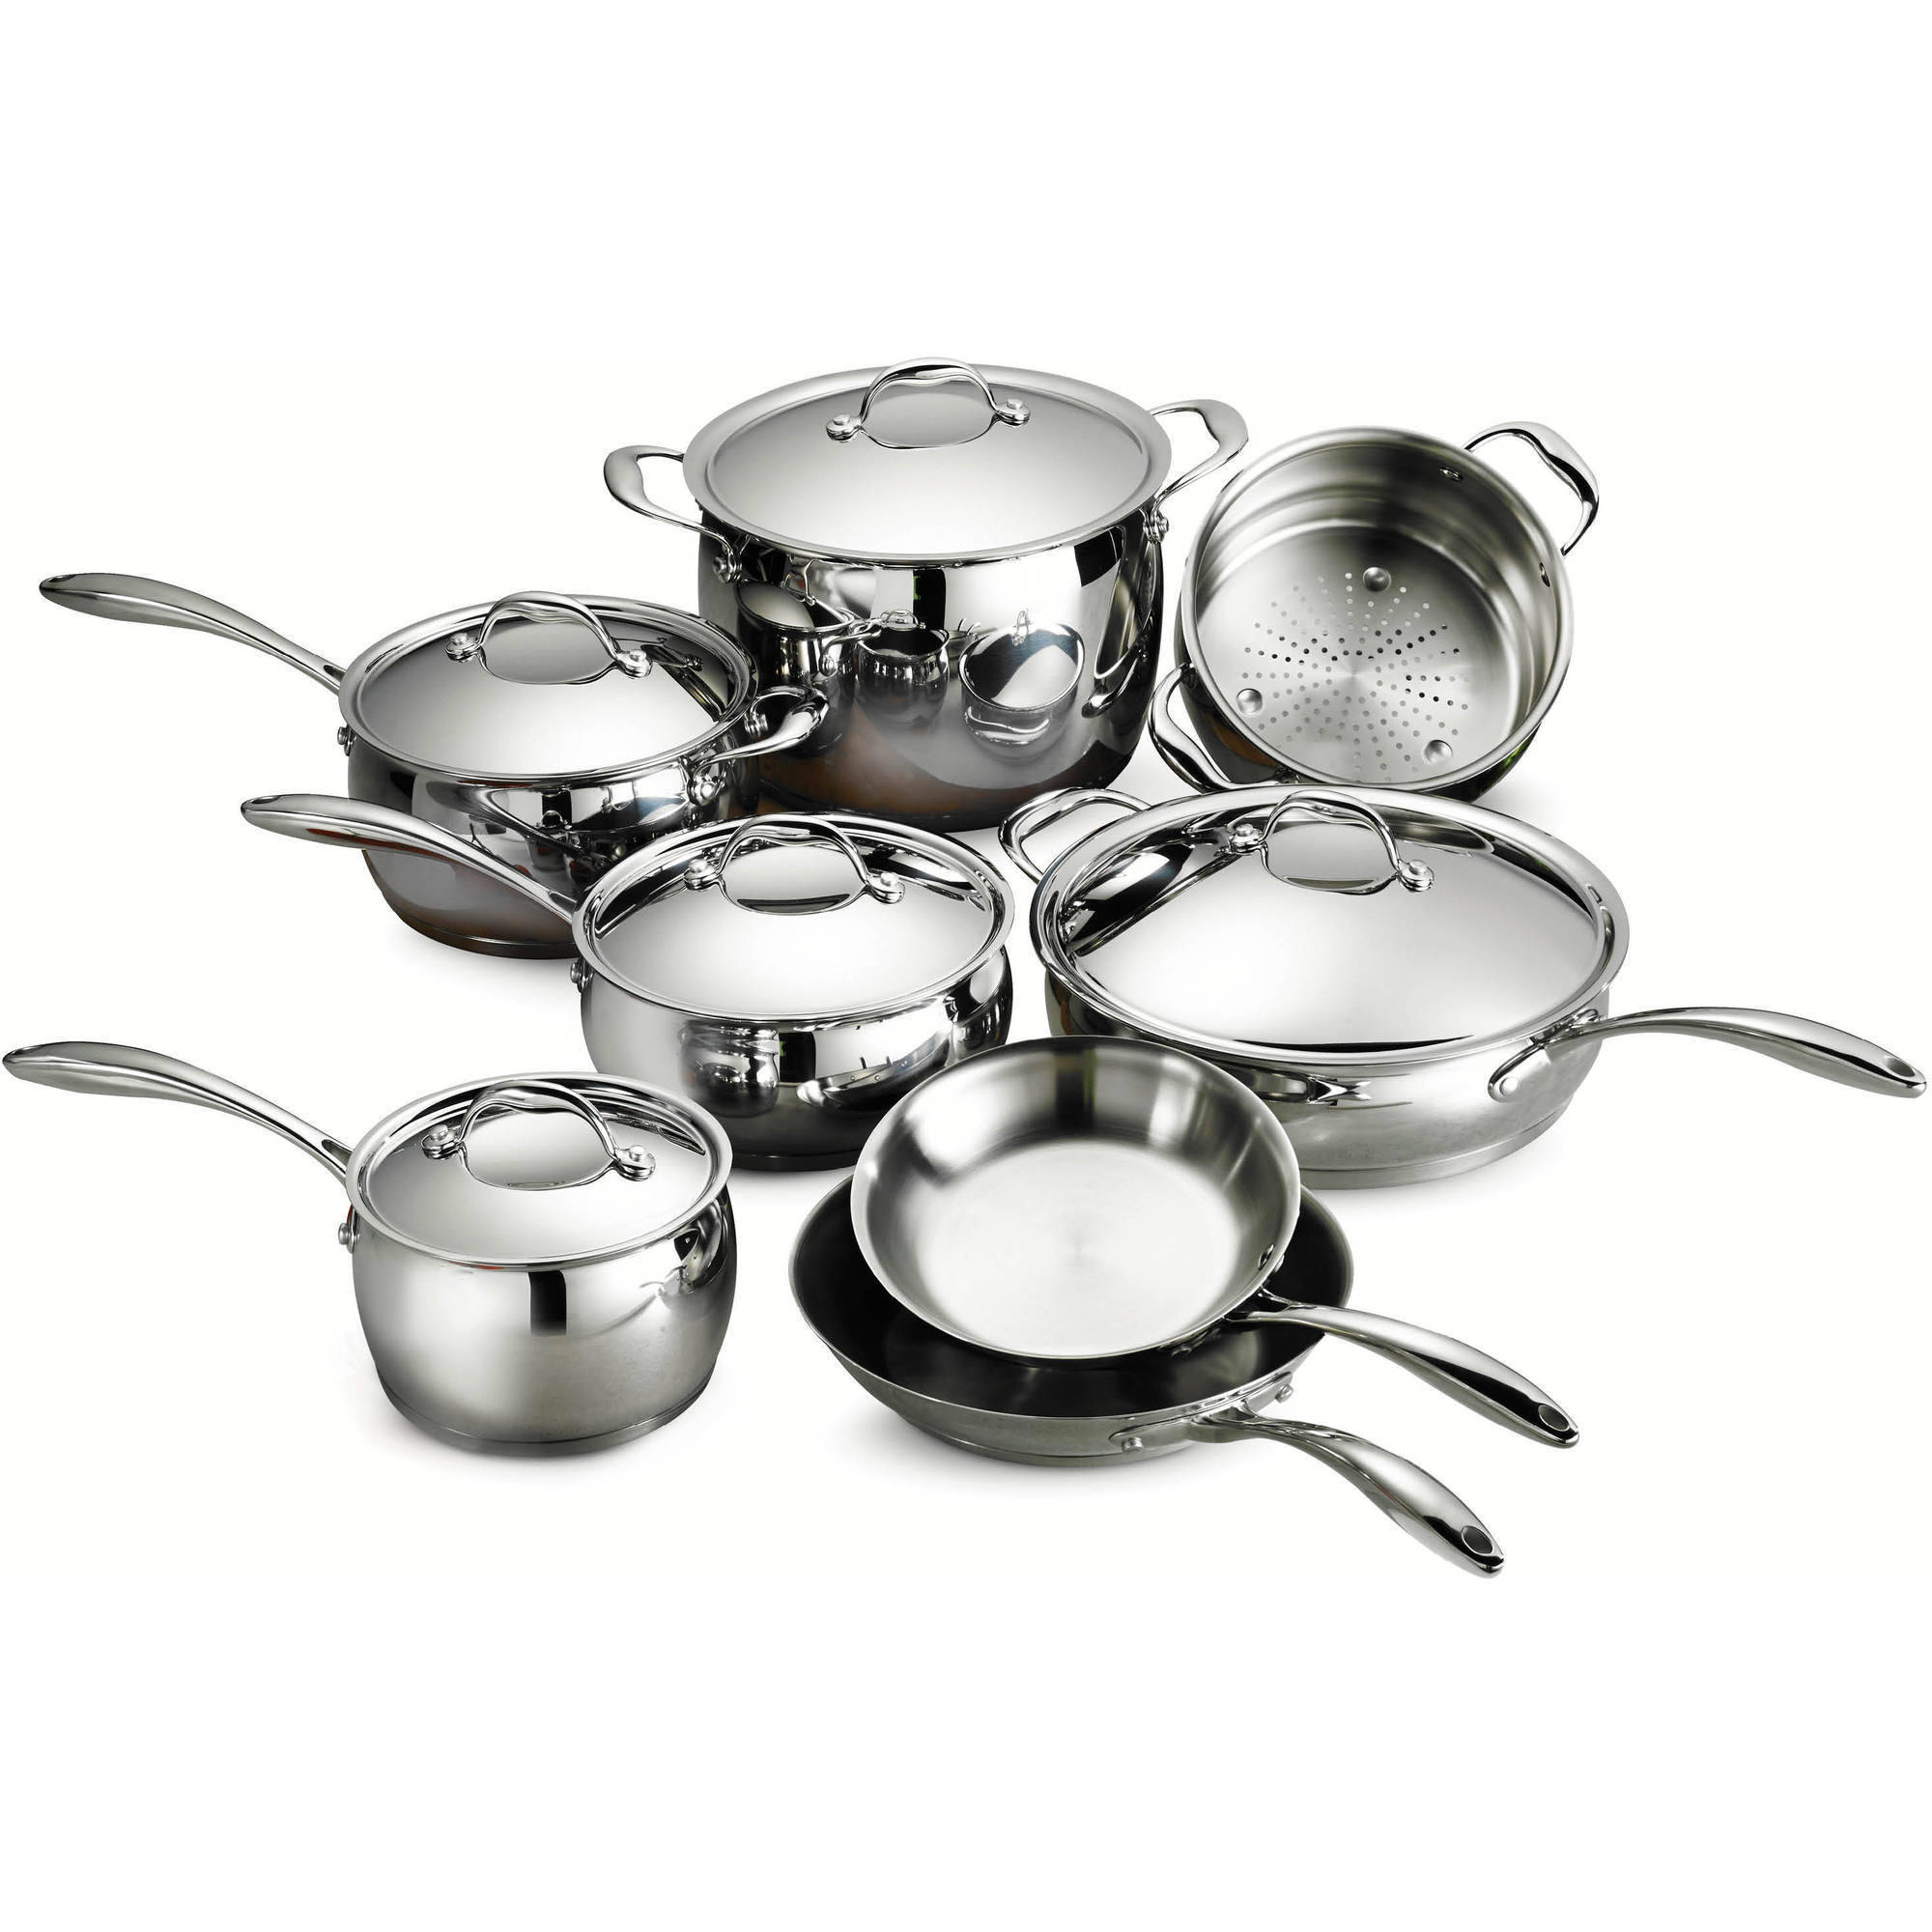 Tramontina Gourmet Domus Stainless Steel 13-Piece Cookware Set